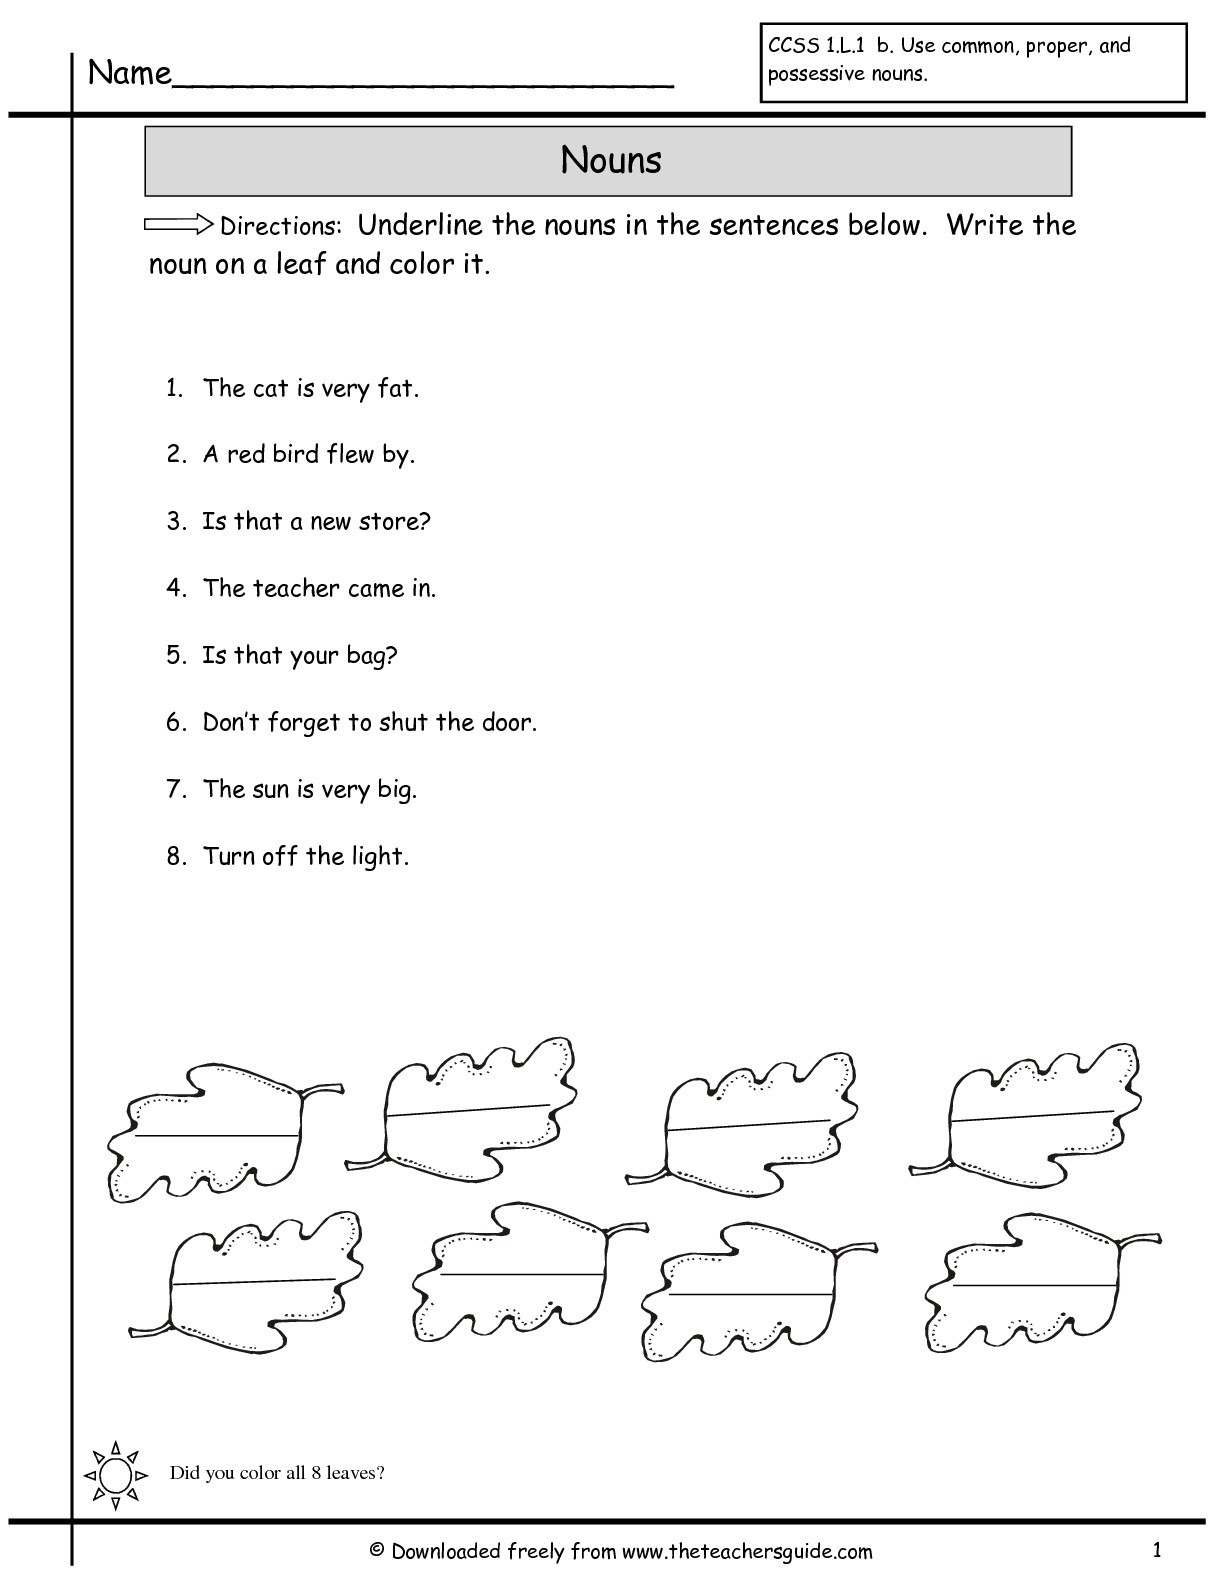 Noun Worksheets 2nd Grade Free Pronoun Worksheet for 2nd Grade